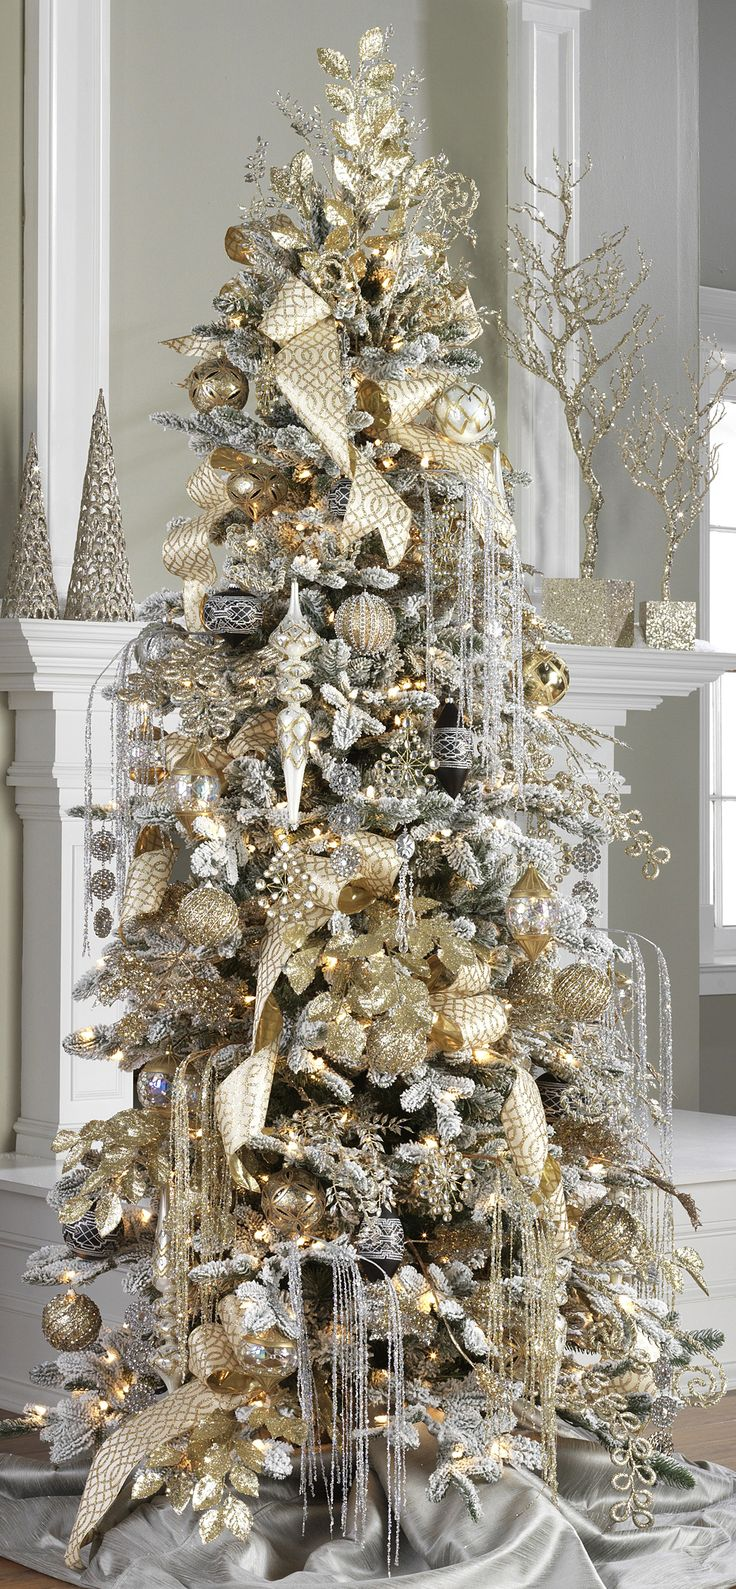 Christmas tree decorations silver and gold - Raz Imports 2015 Formal Affair Tree Lots Of Other Pretty Ideas Too